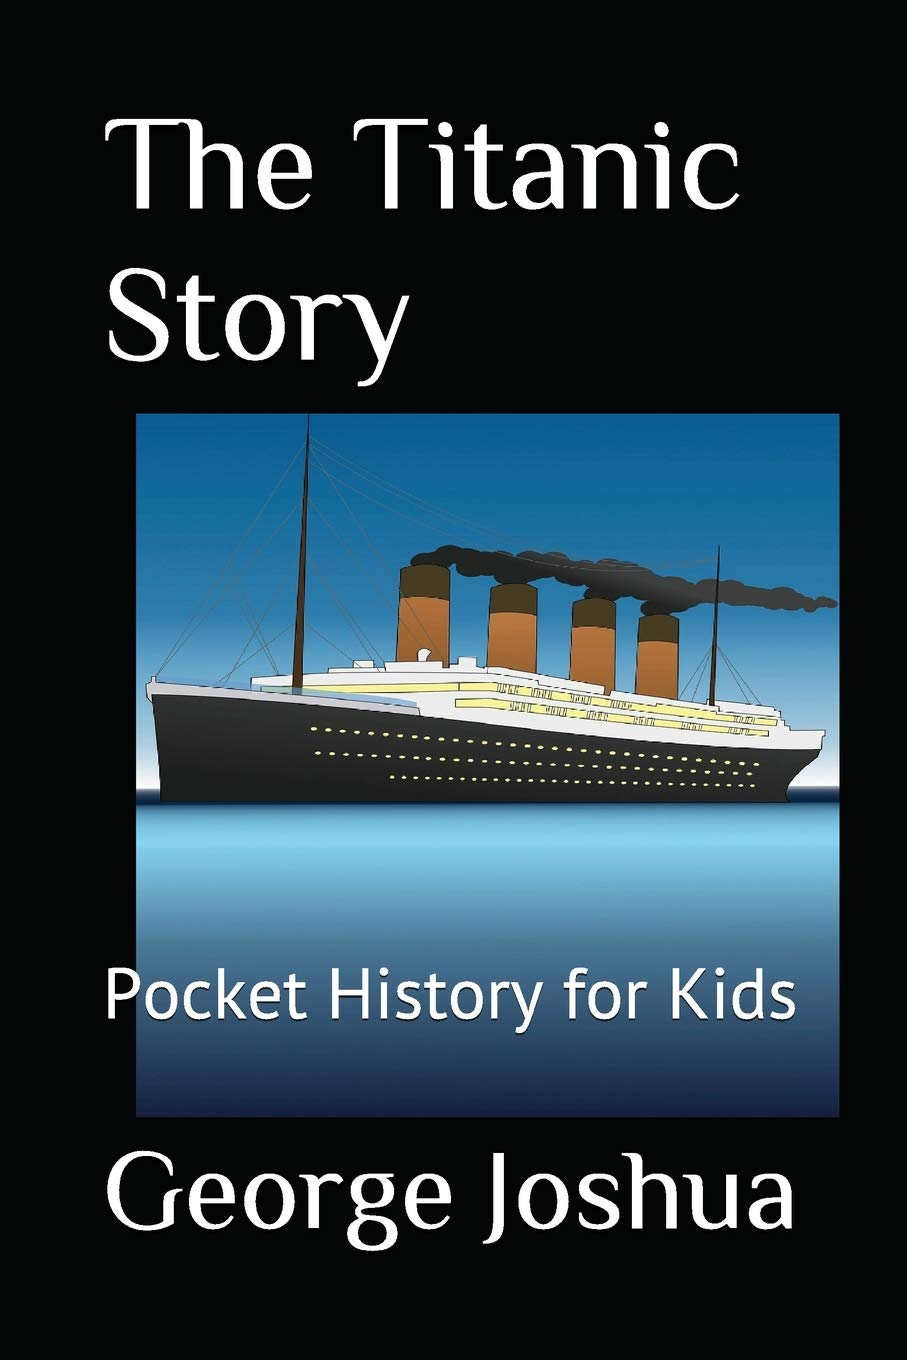 The Titanic Story: Pocket History for Kids